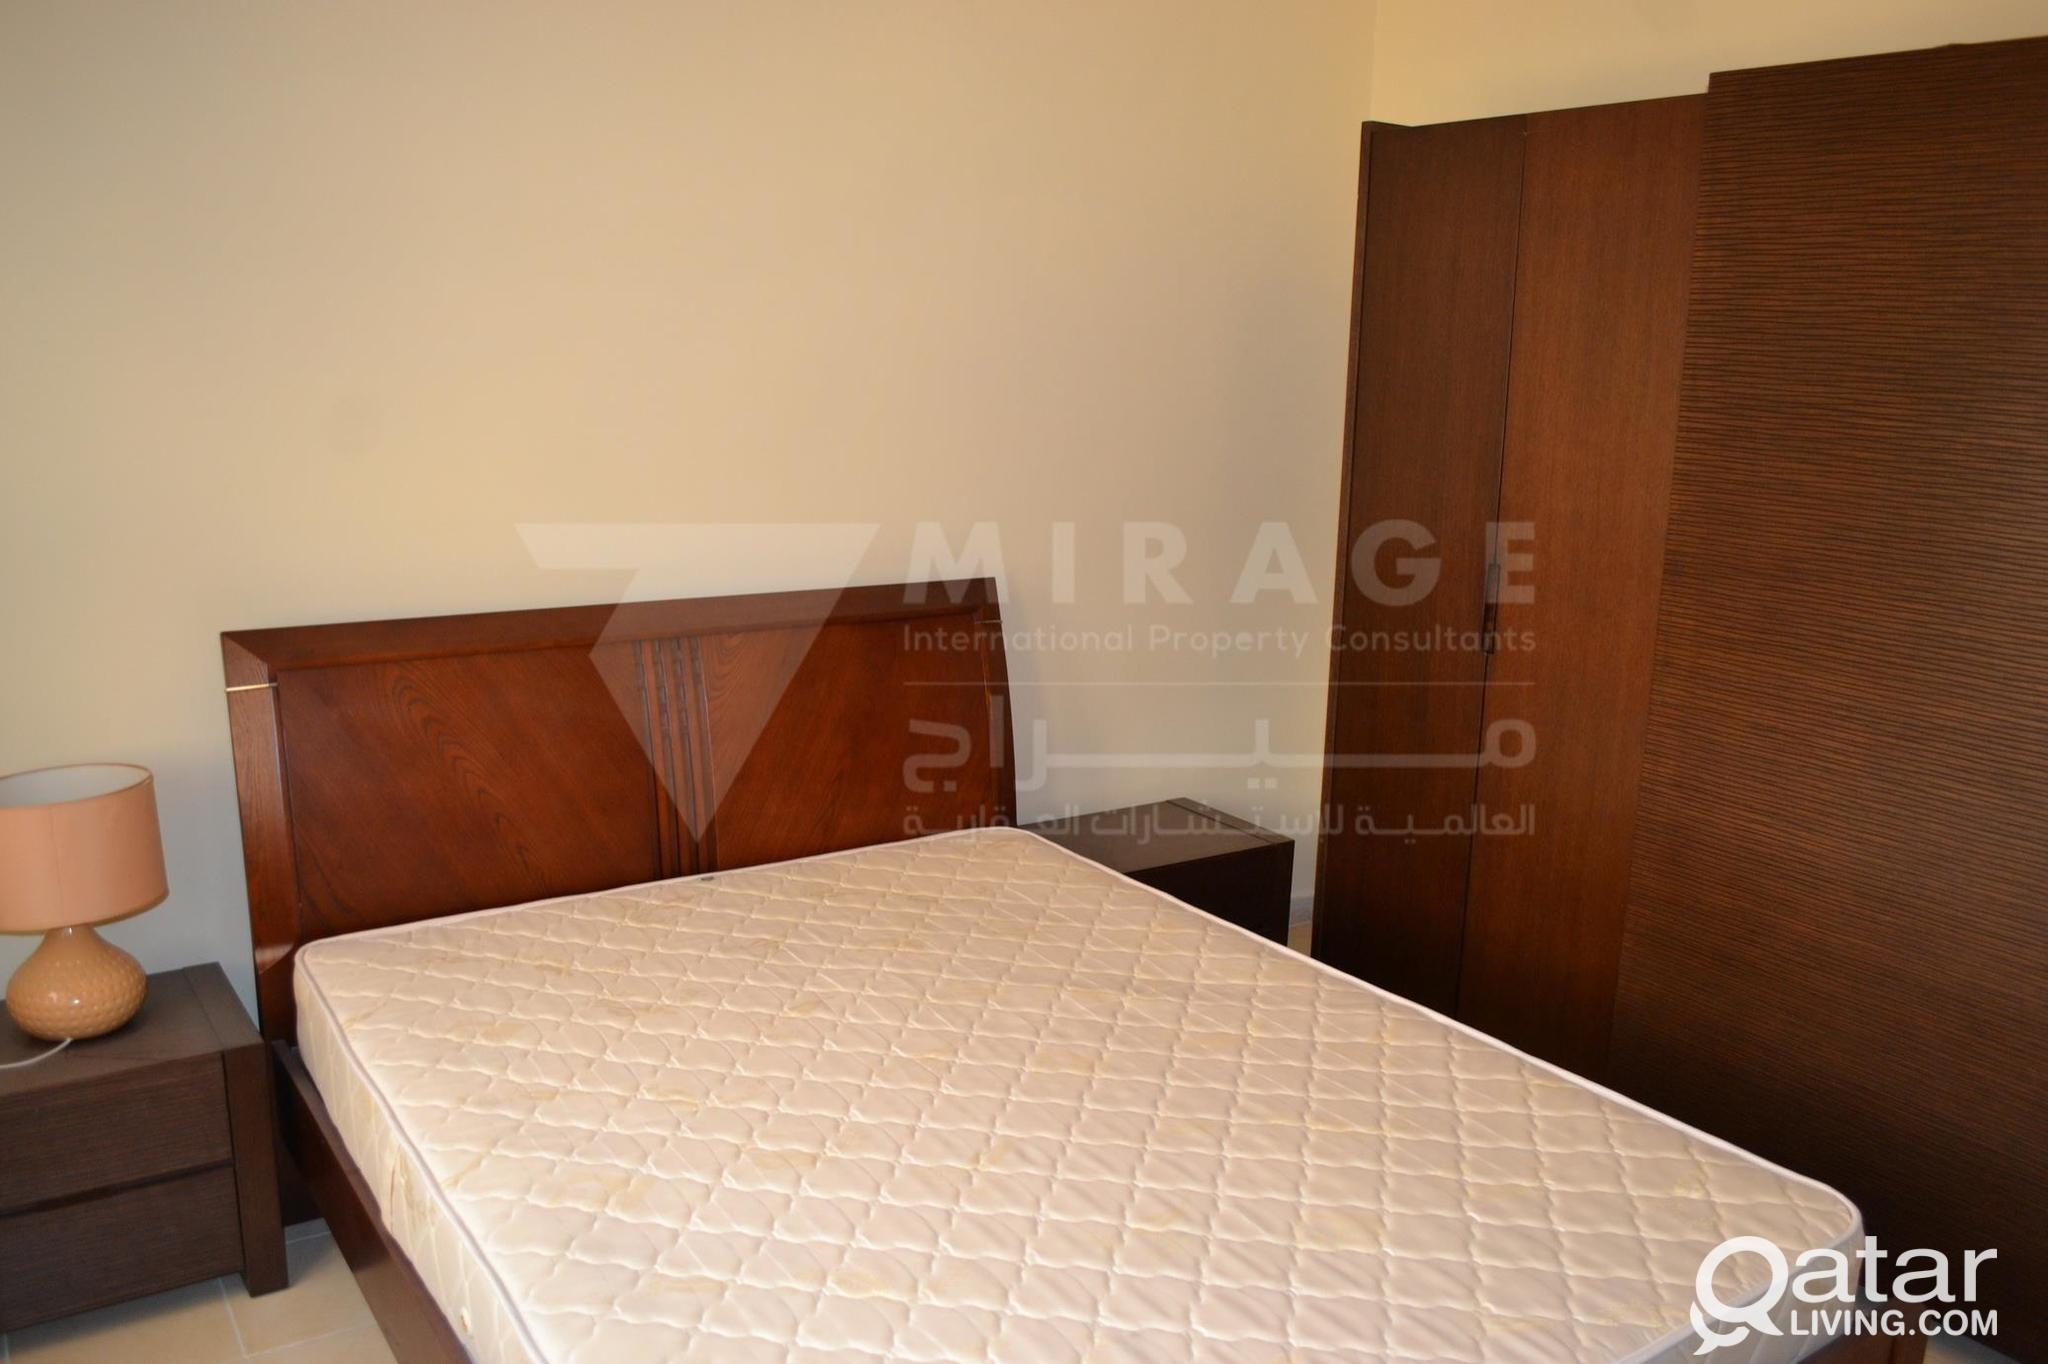 3-bed Furnished Apartments with facilities in Bin